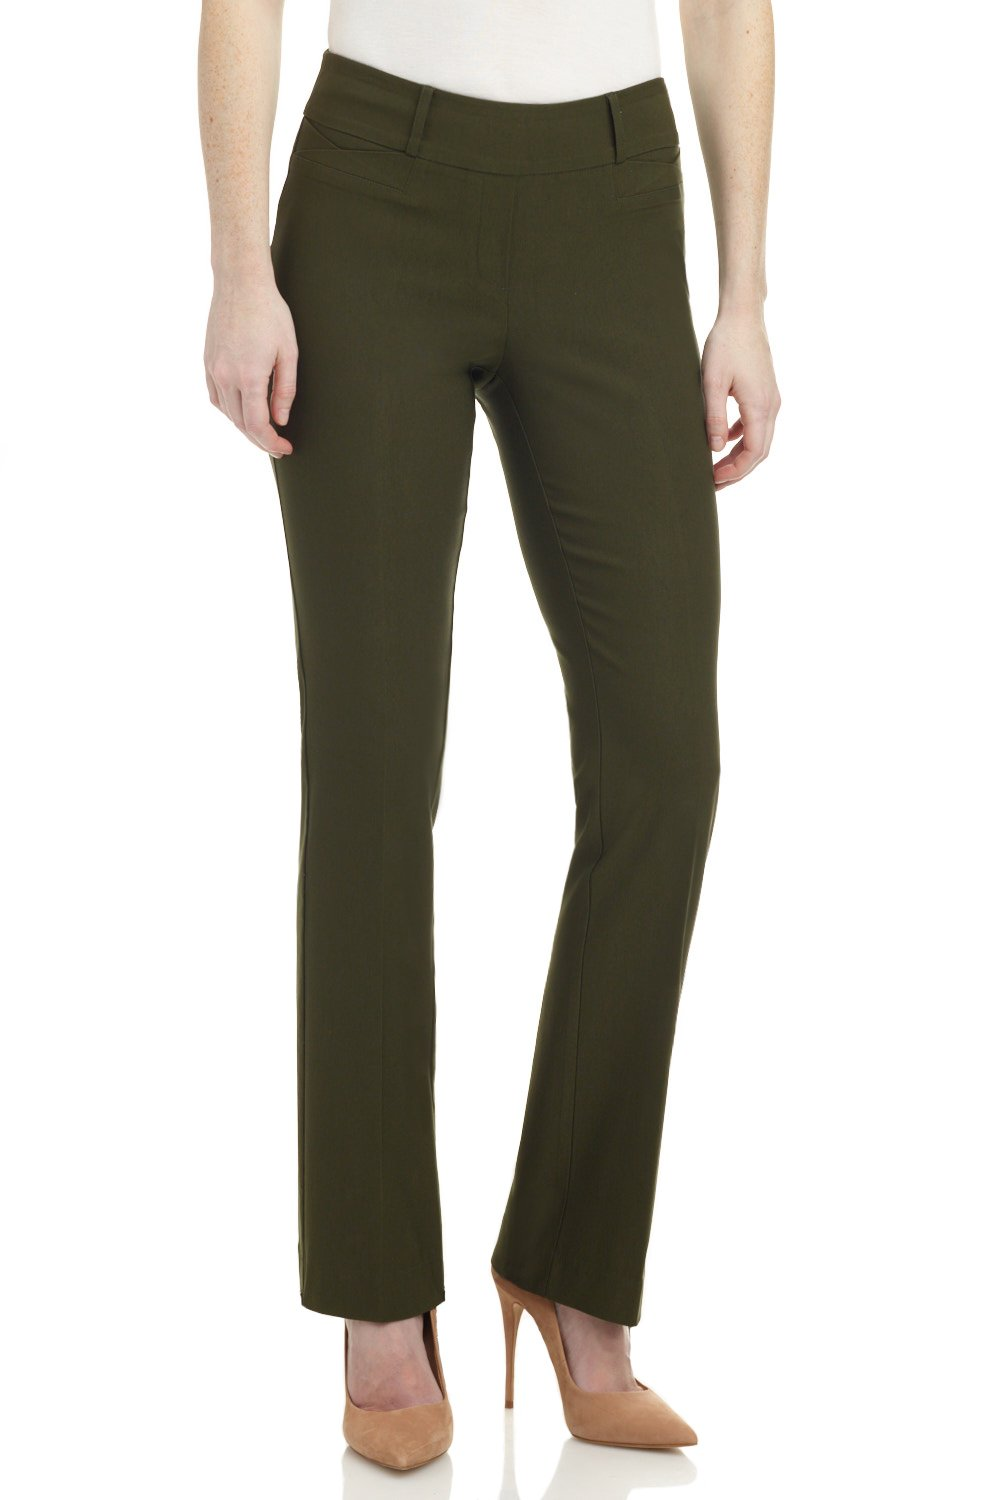 Rekucci Women's Ease In To Comfort Fit Barely Bootcut Stretch Pants (18,Olive)